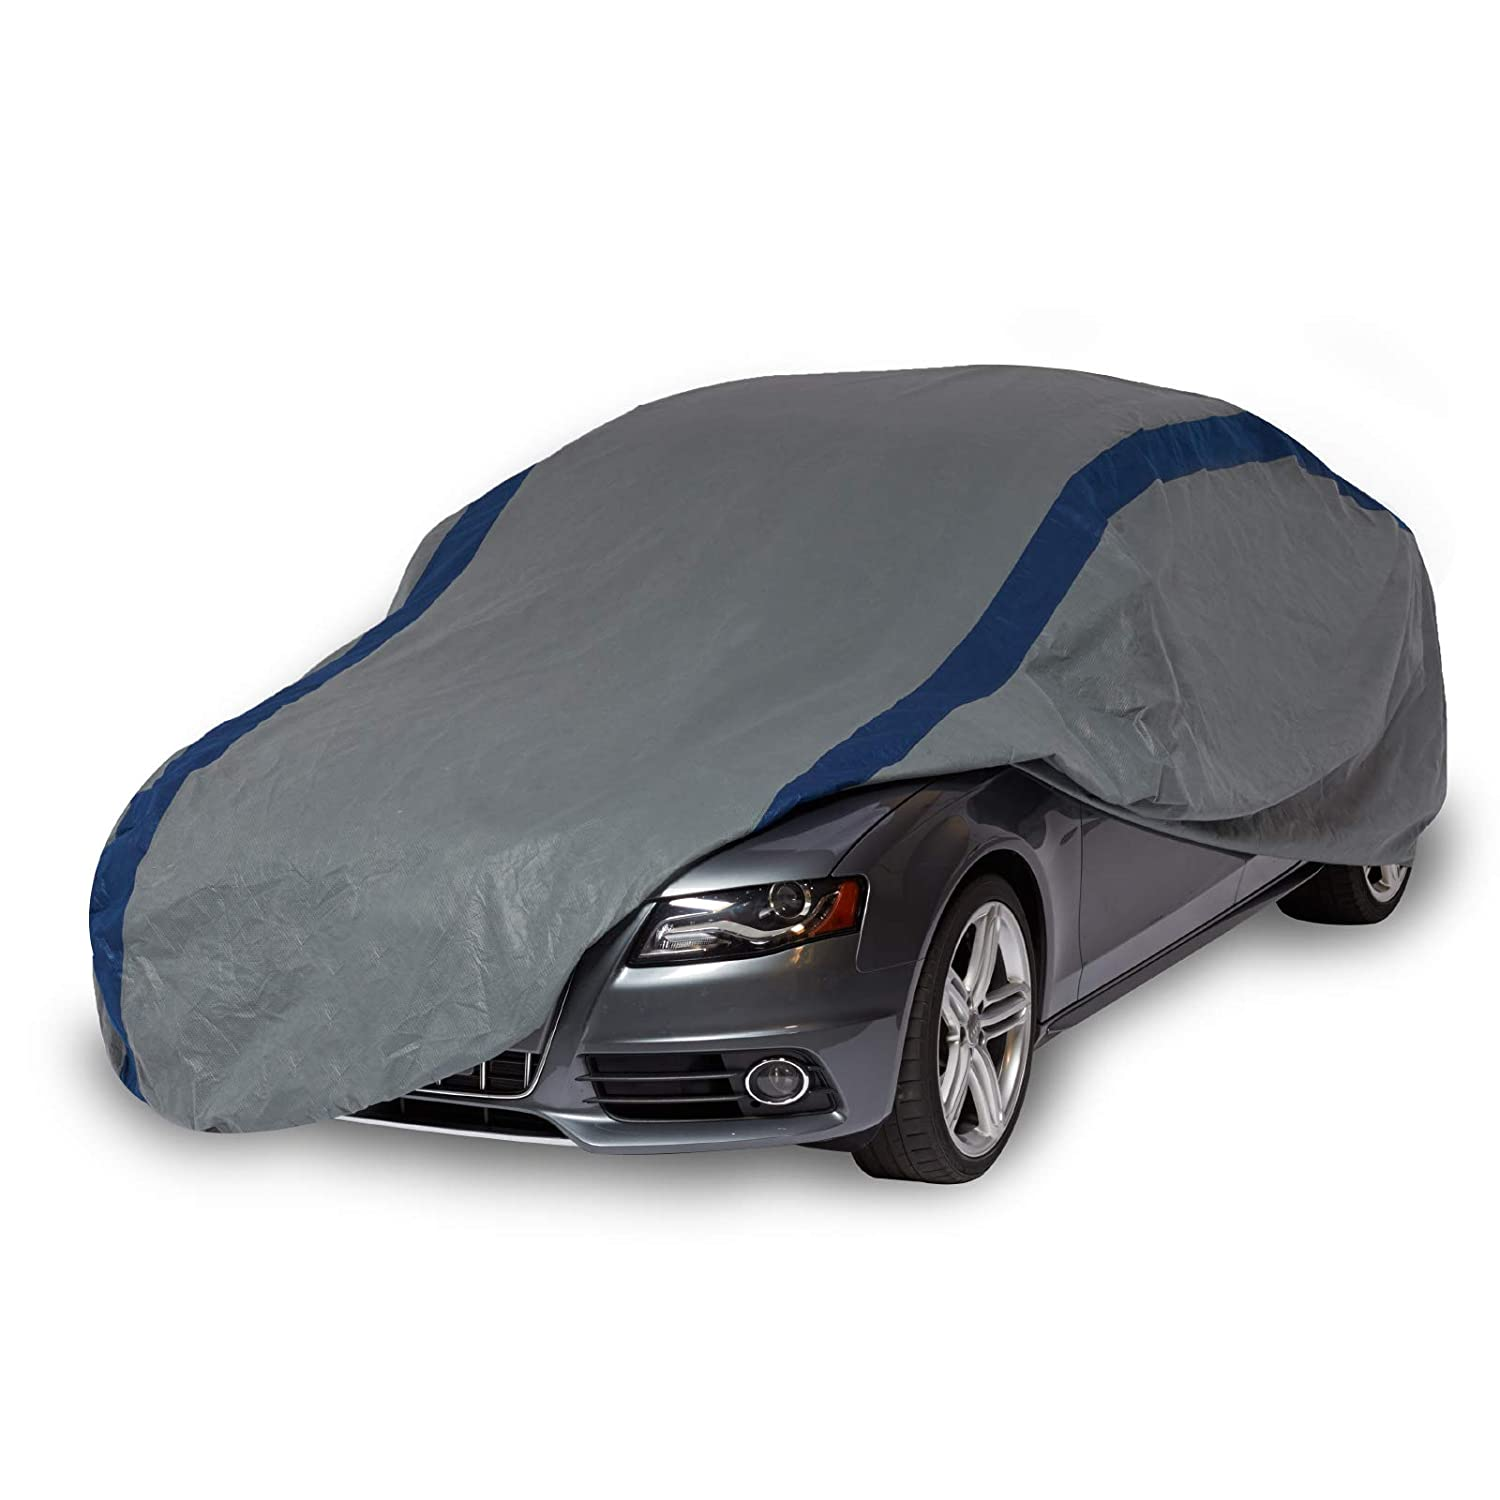 Duck Covers Weather Defender Outdoor Car Cover, Limited 4 Year Warranty,  Fits Sedans up to 16 ft. 8 in. A3C200